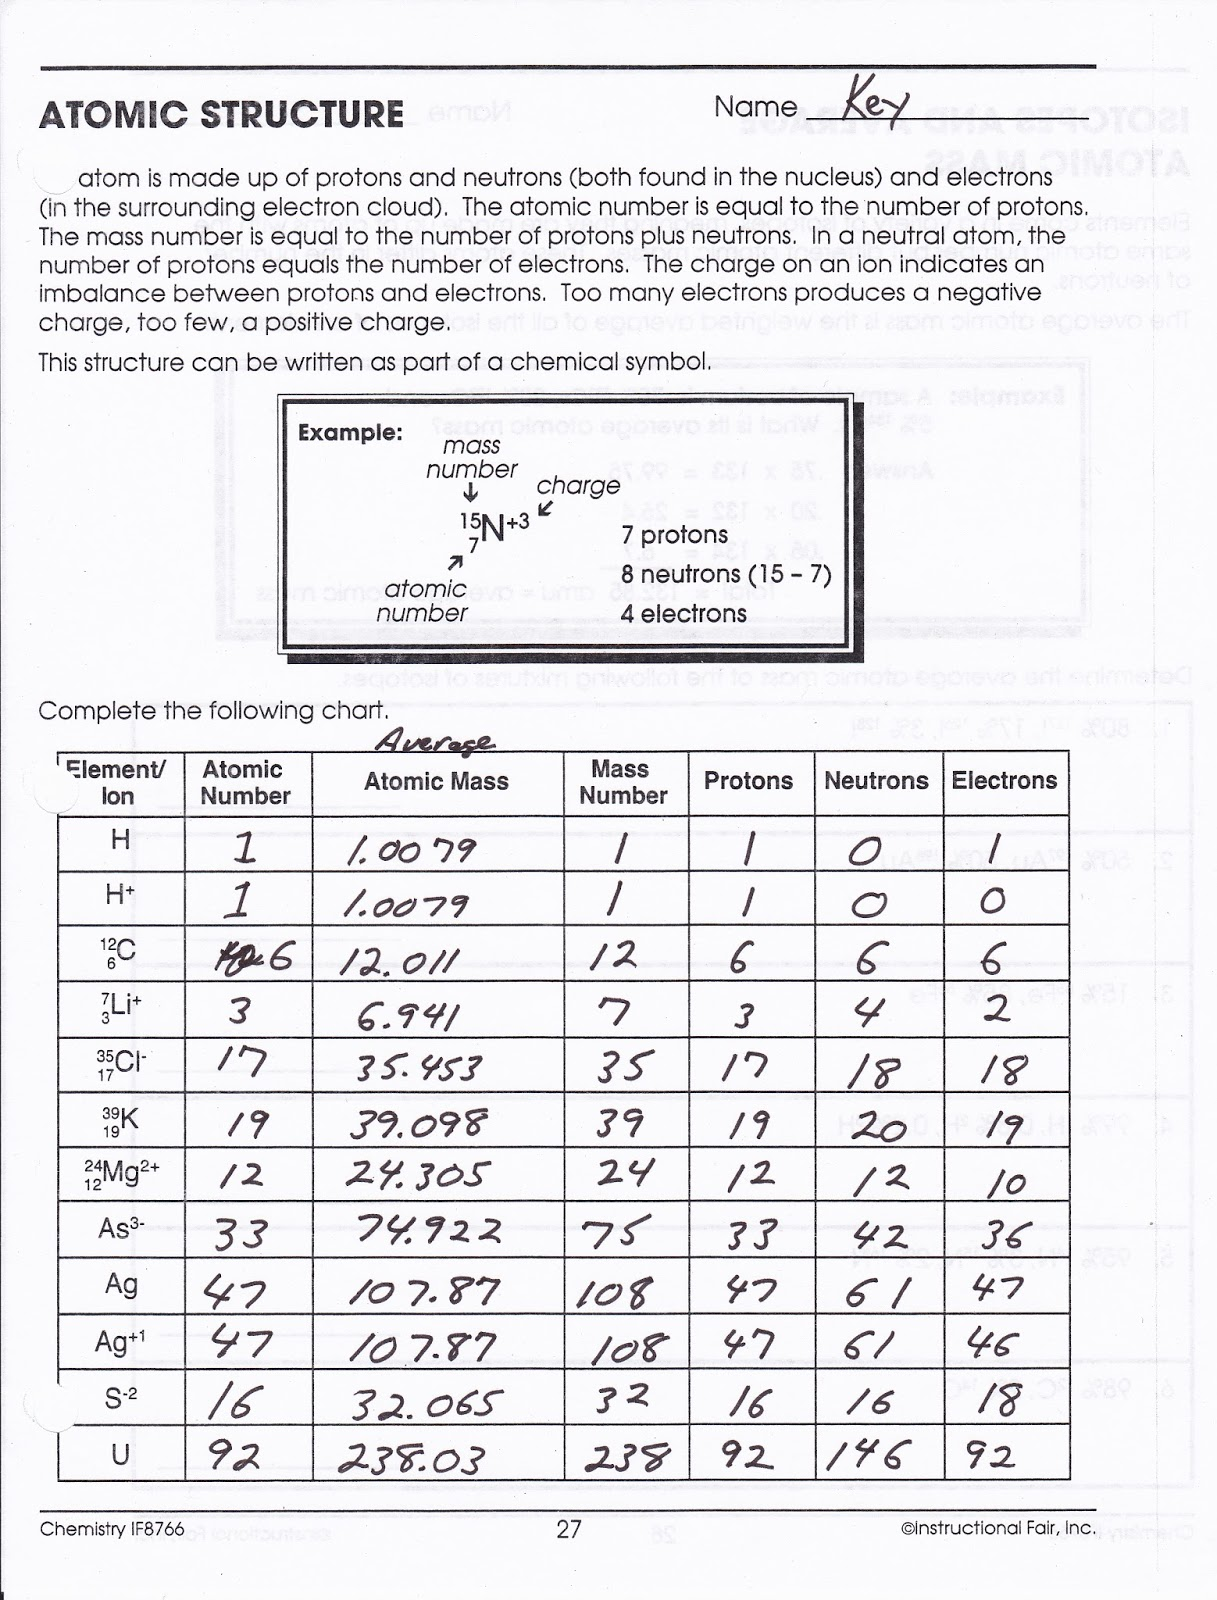 worksheet Basic Atomic Structure Worksheet Answers Luizah – Atomic Structure Worksheet Answer Key